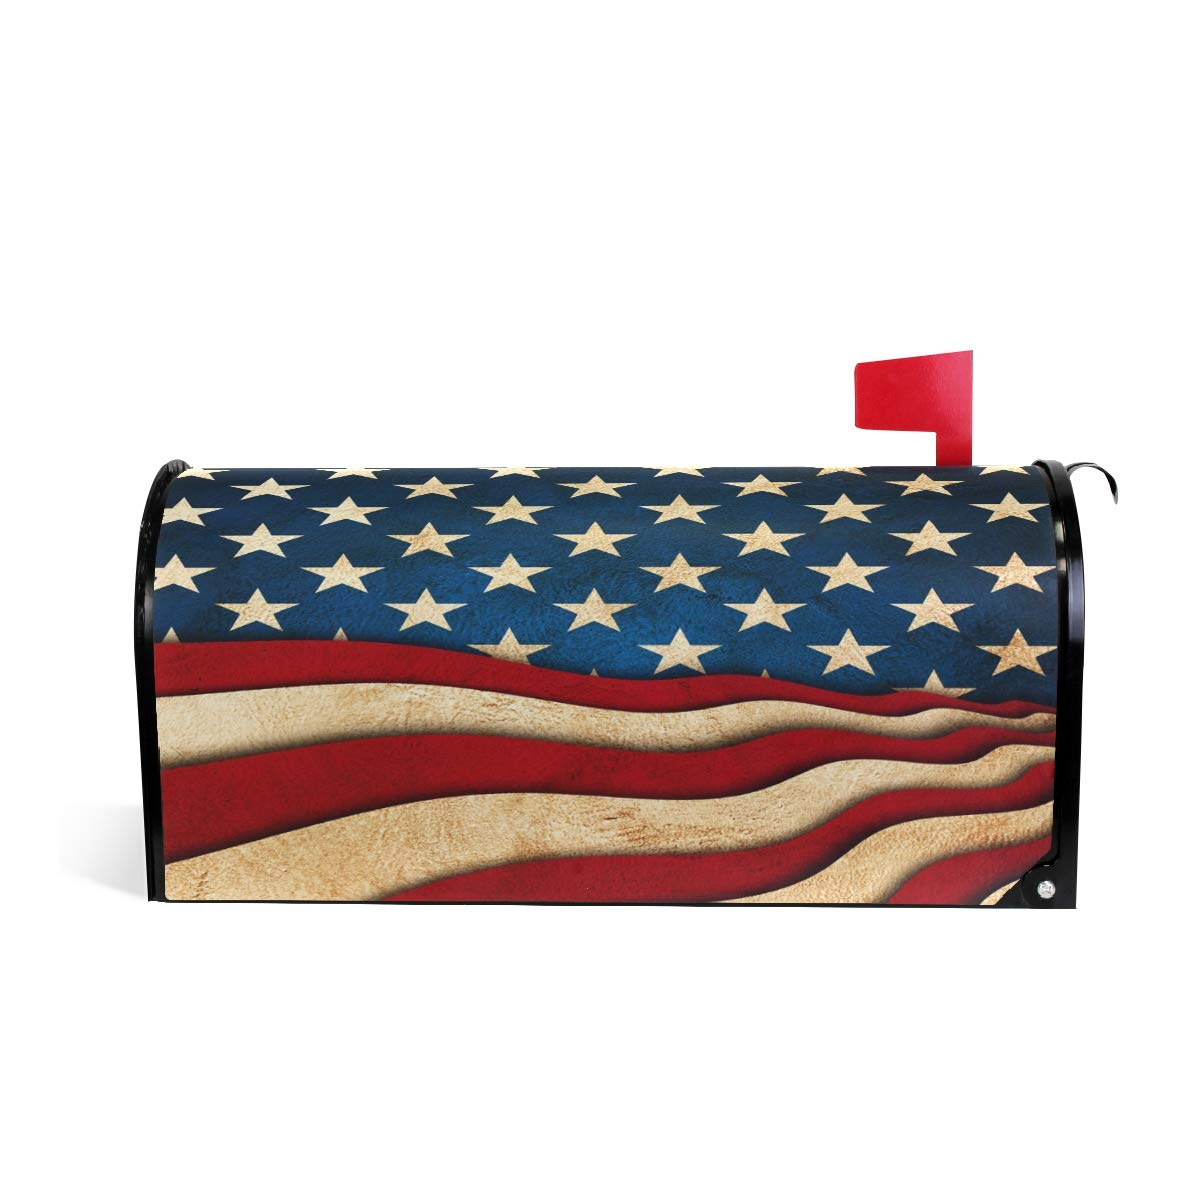 Wamika Magnetic Letter Mailbox Cover July Independence Day America Flag Decor Welcome Home Outdoor Standard Size by Wamika